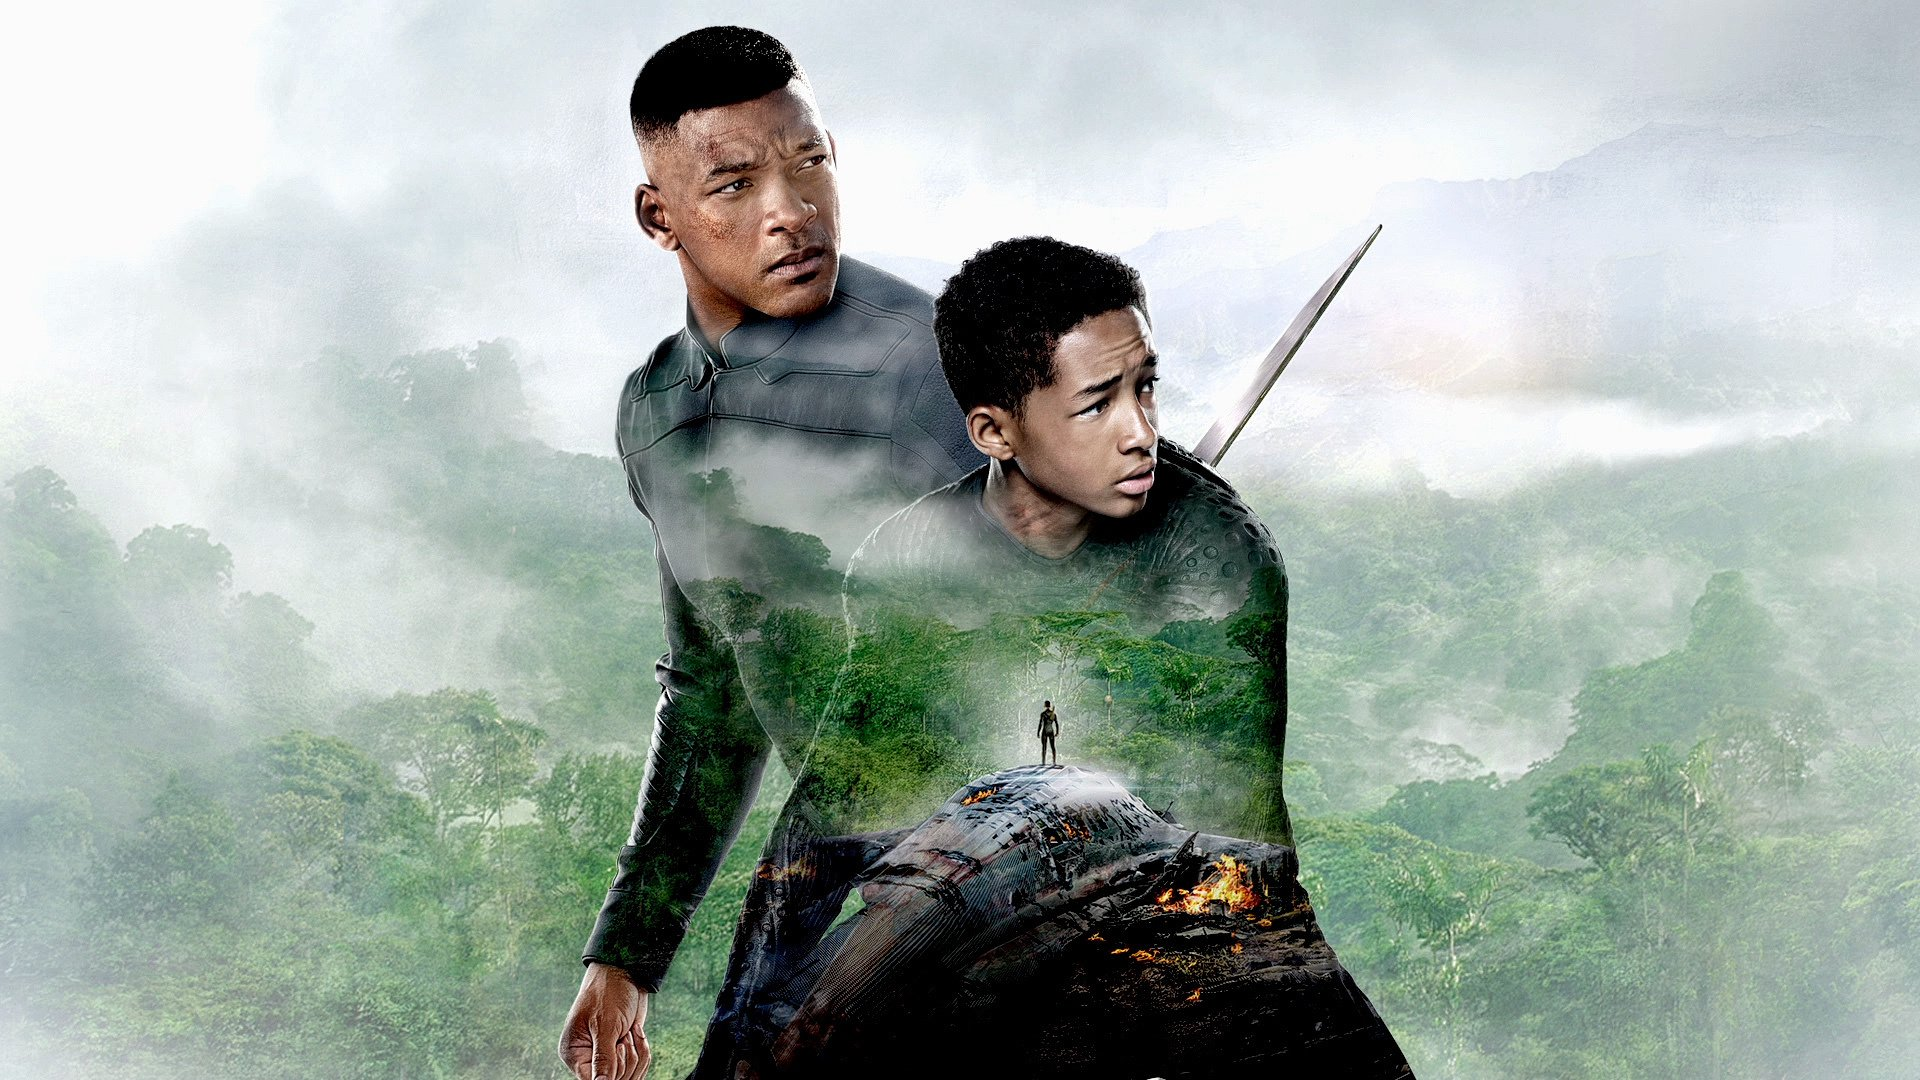 After Earth HD Wallpaper Background Image 1920x1080 ID 1920x1080